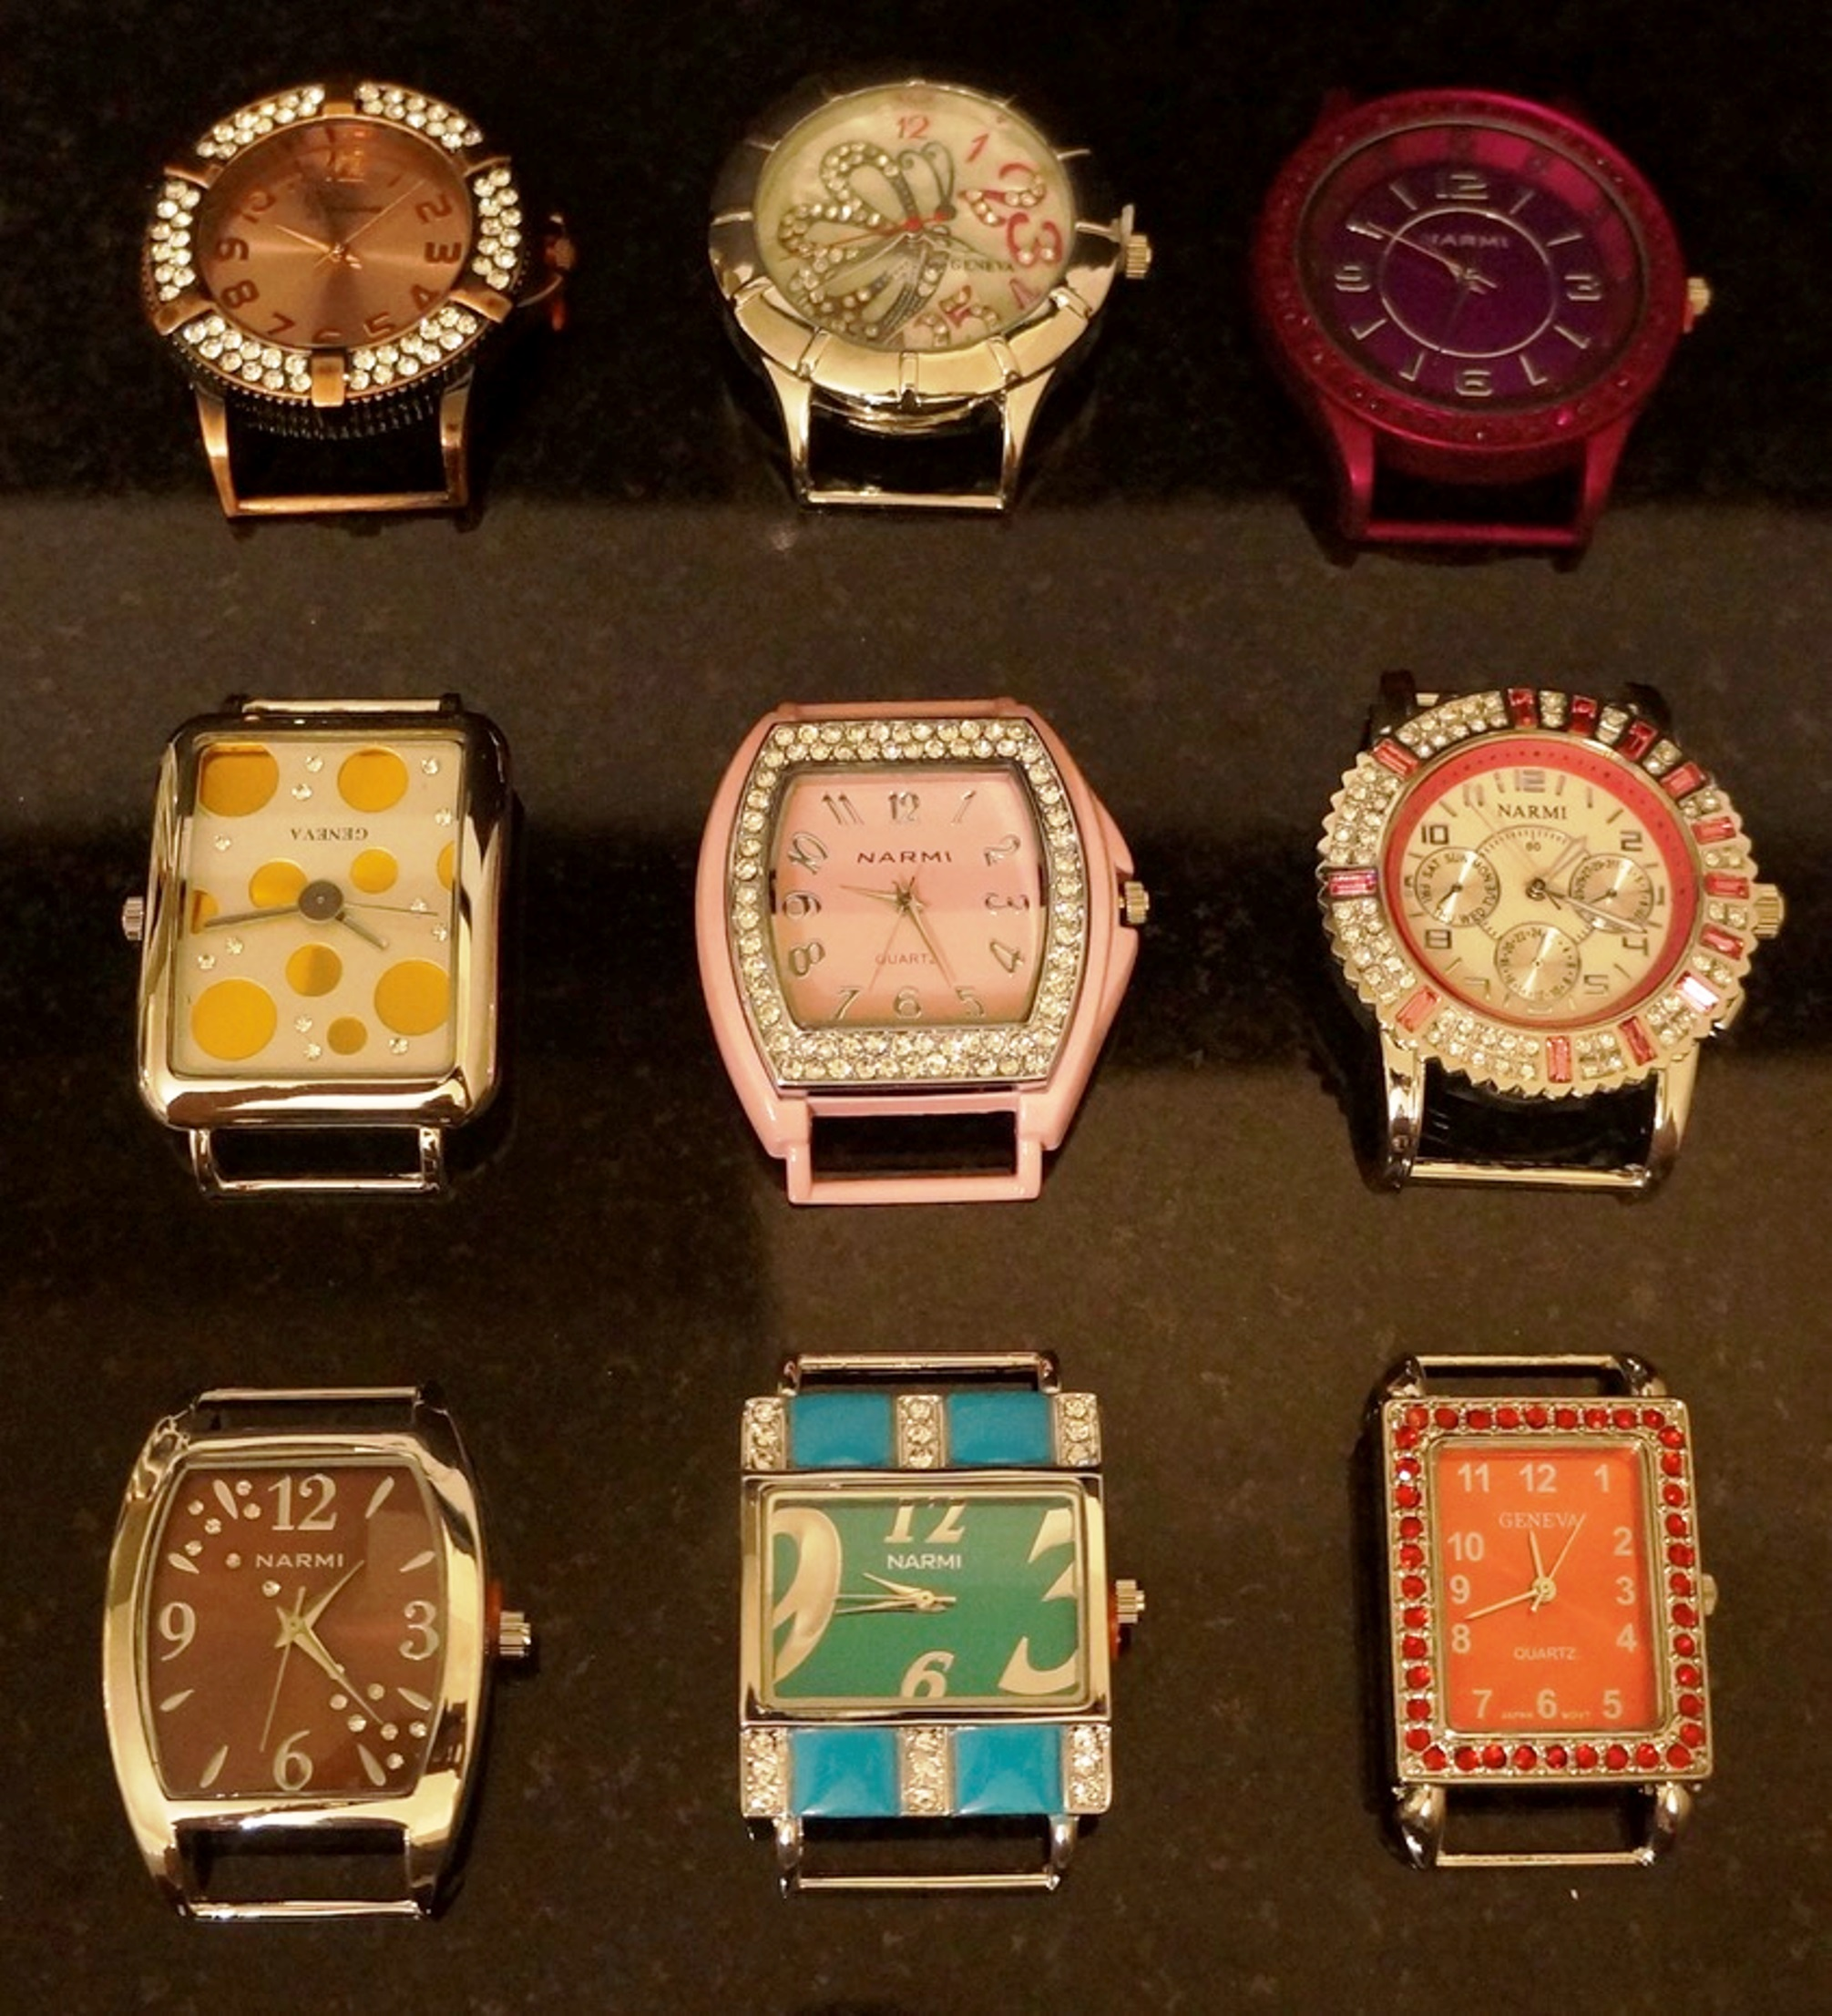 Narmi 5 Mix Solid Bar Watch Face for jewelry Making